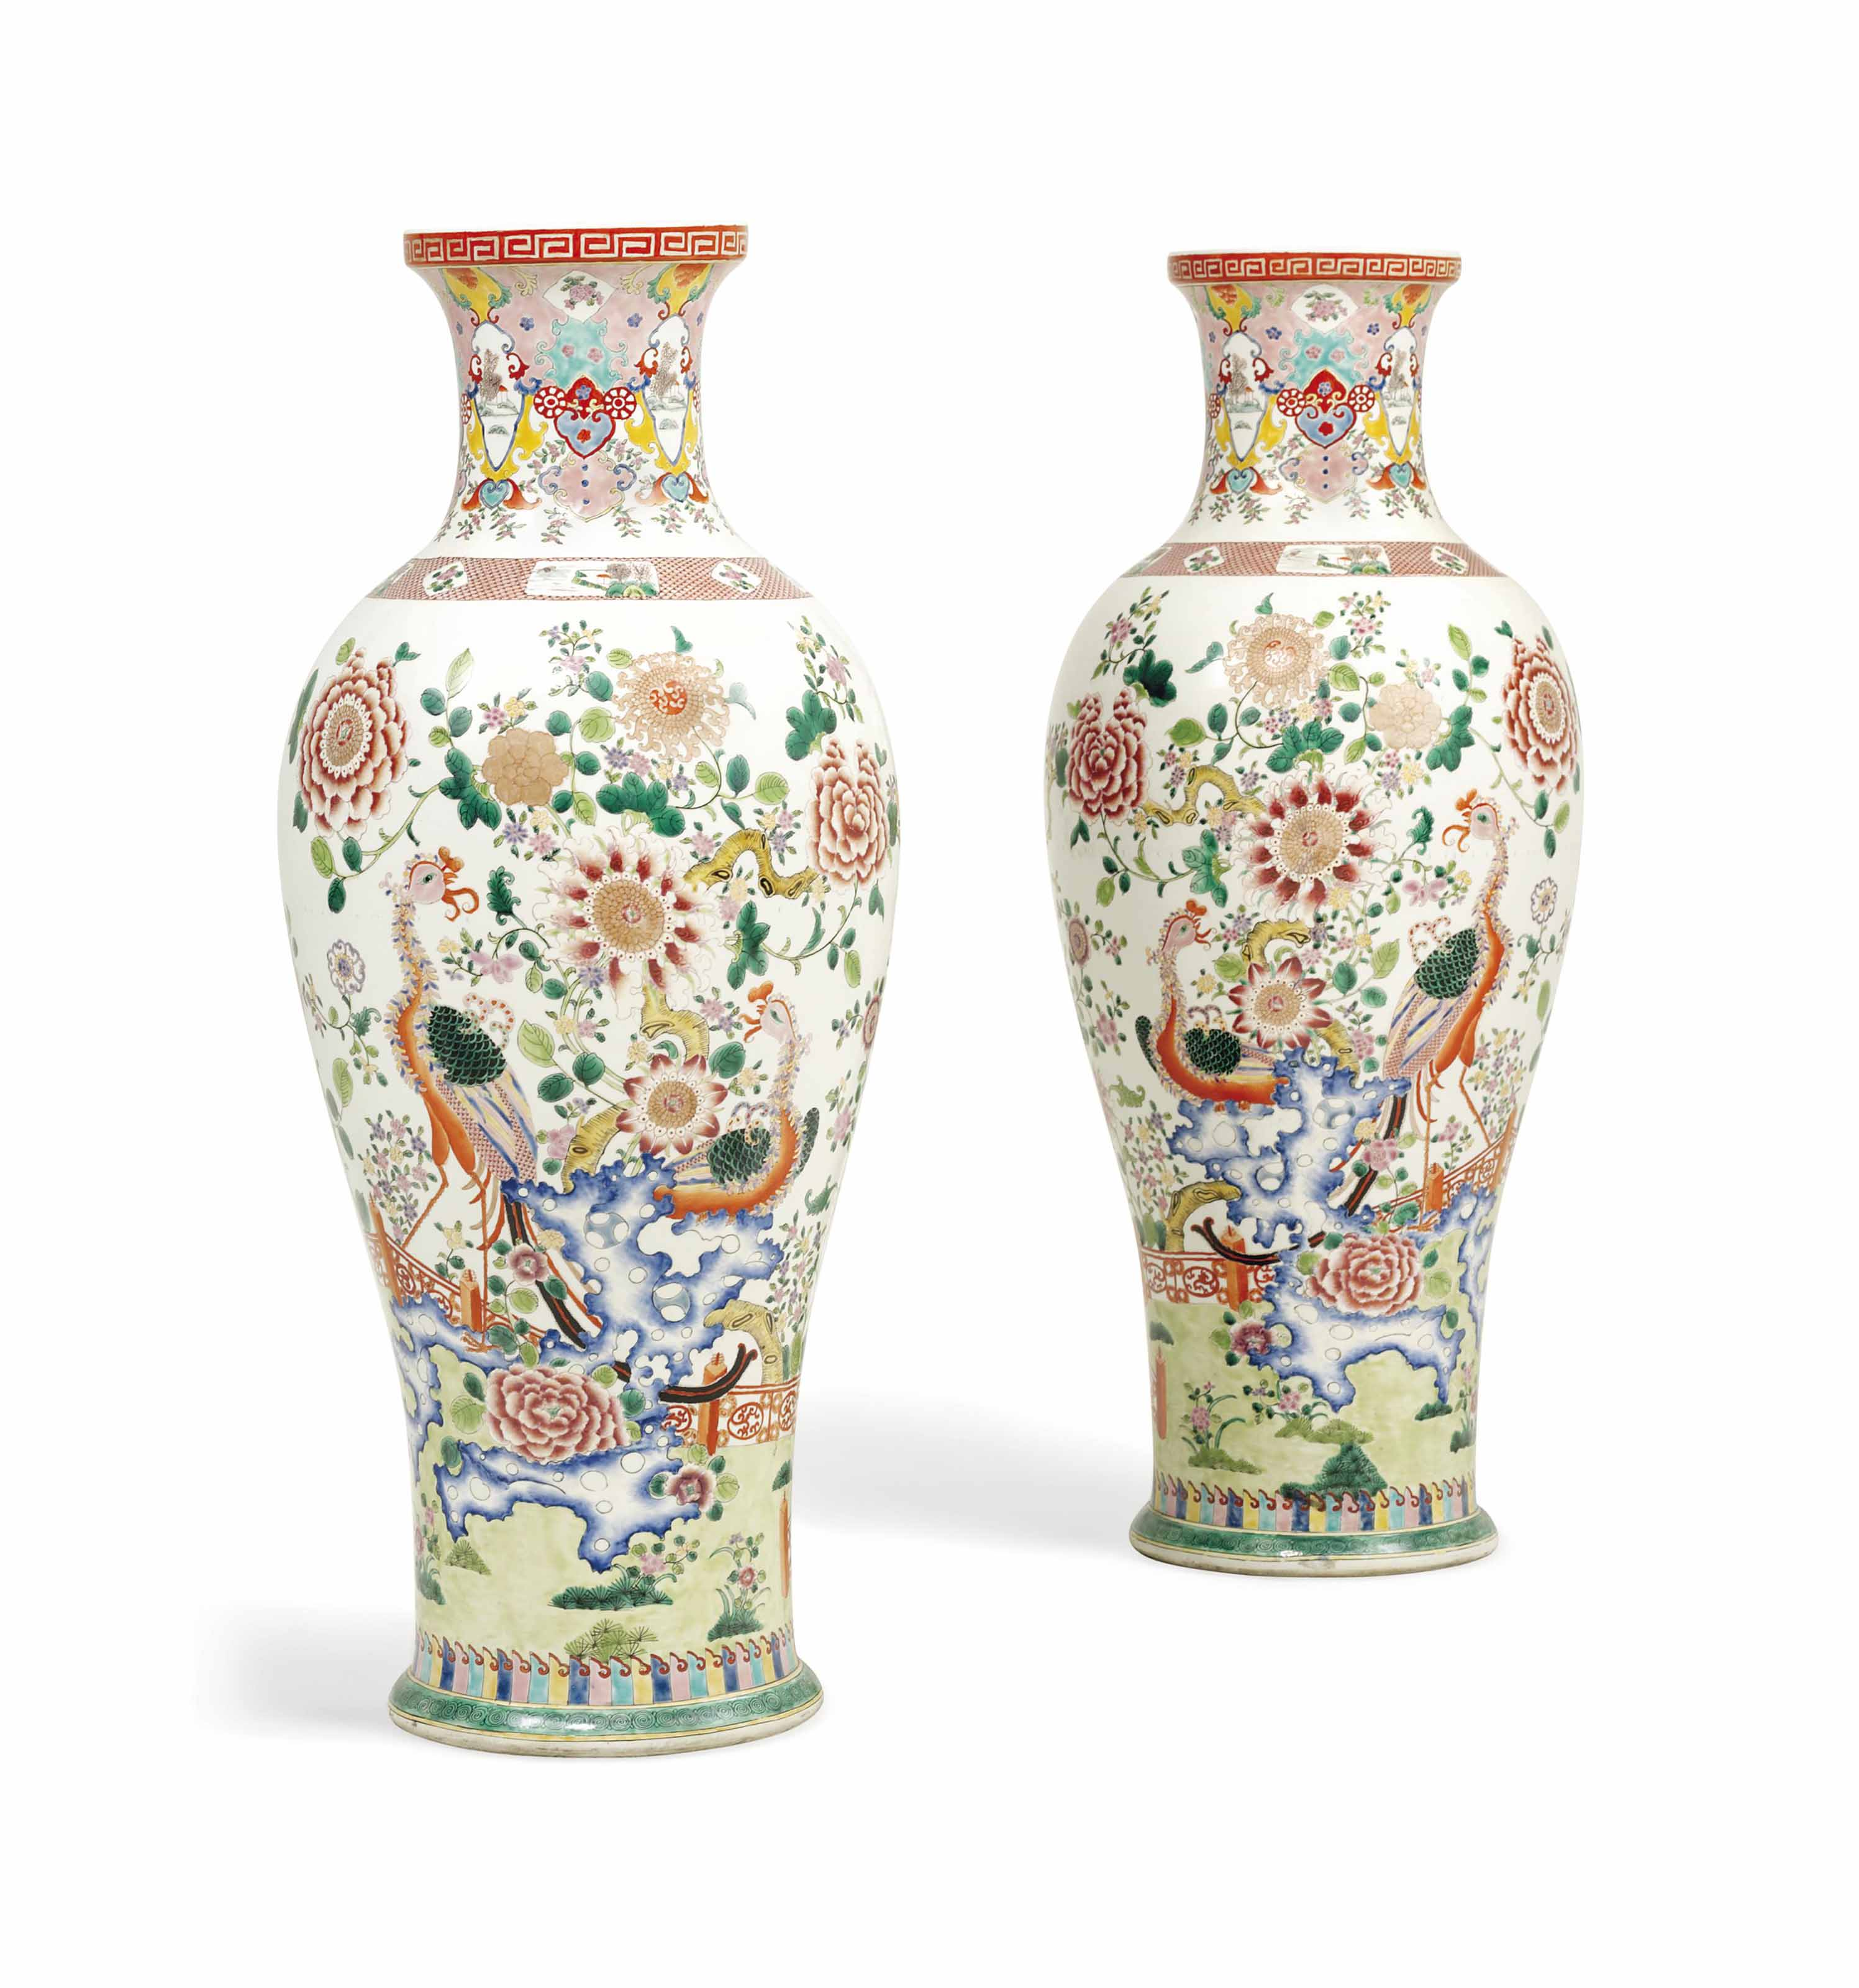 A PAIR OF LARGE CHINESE-STYLE